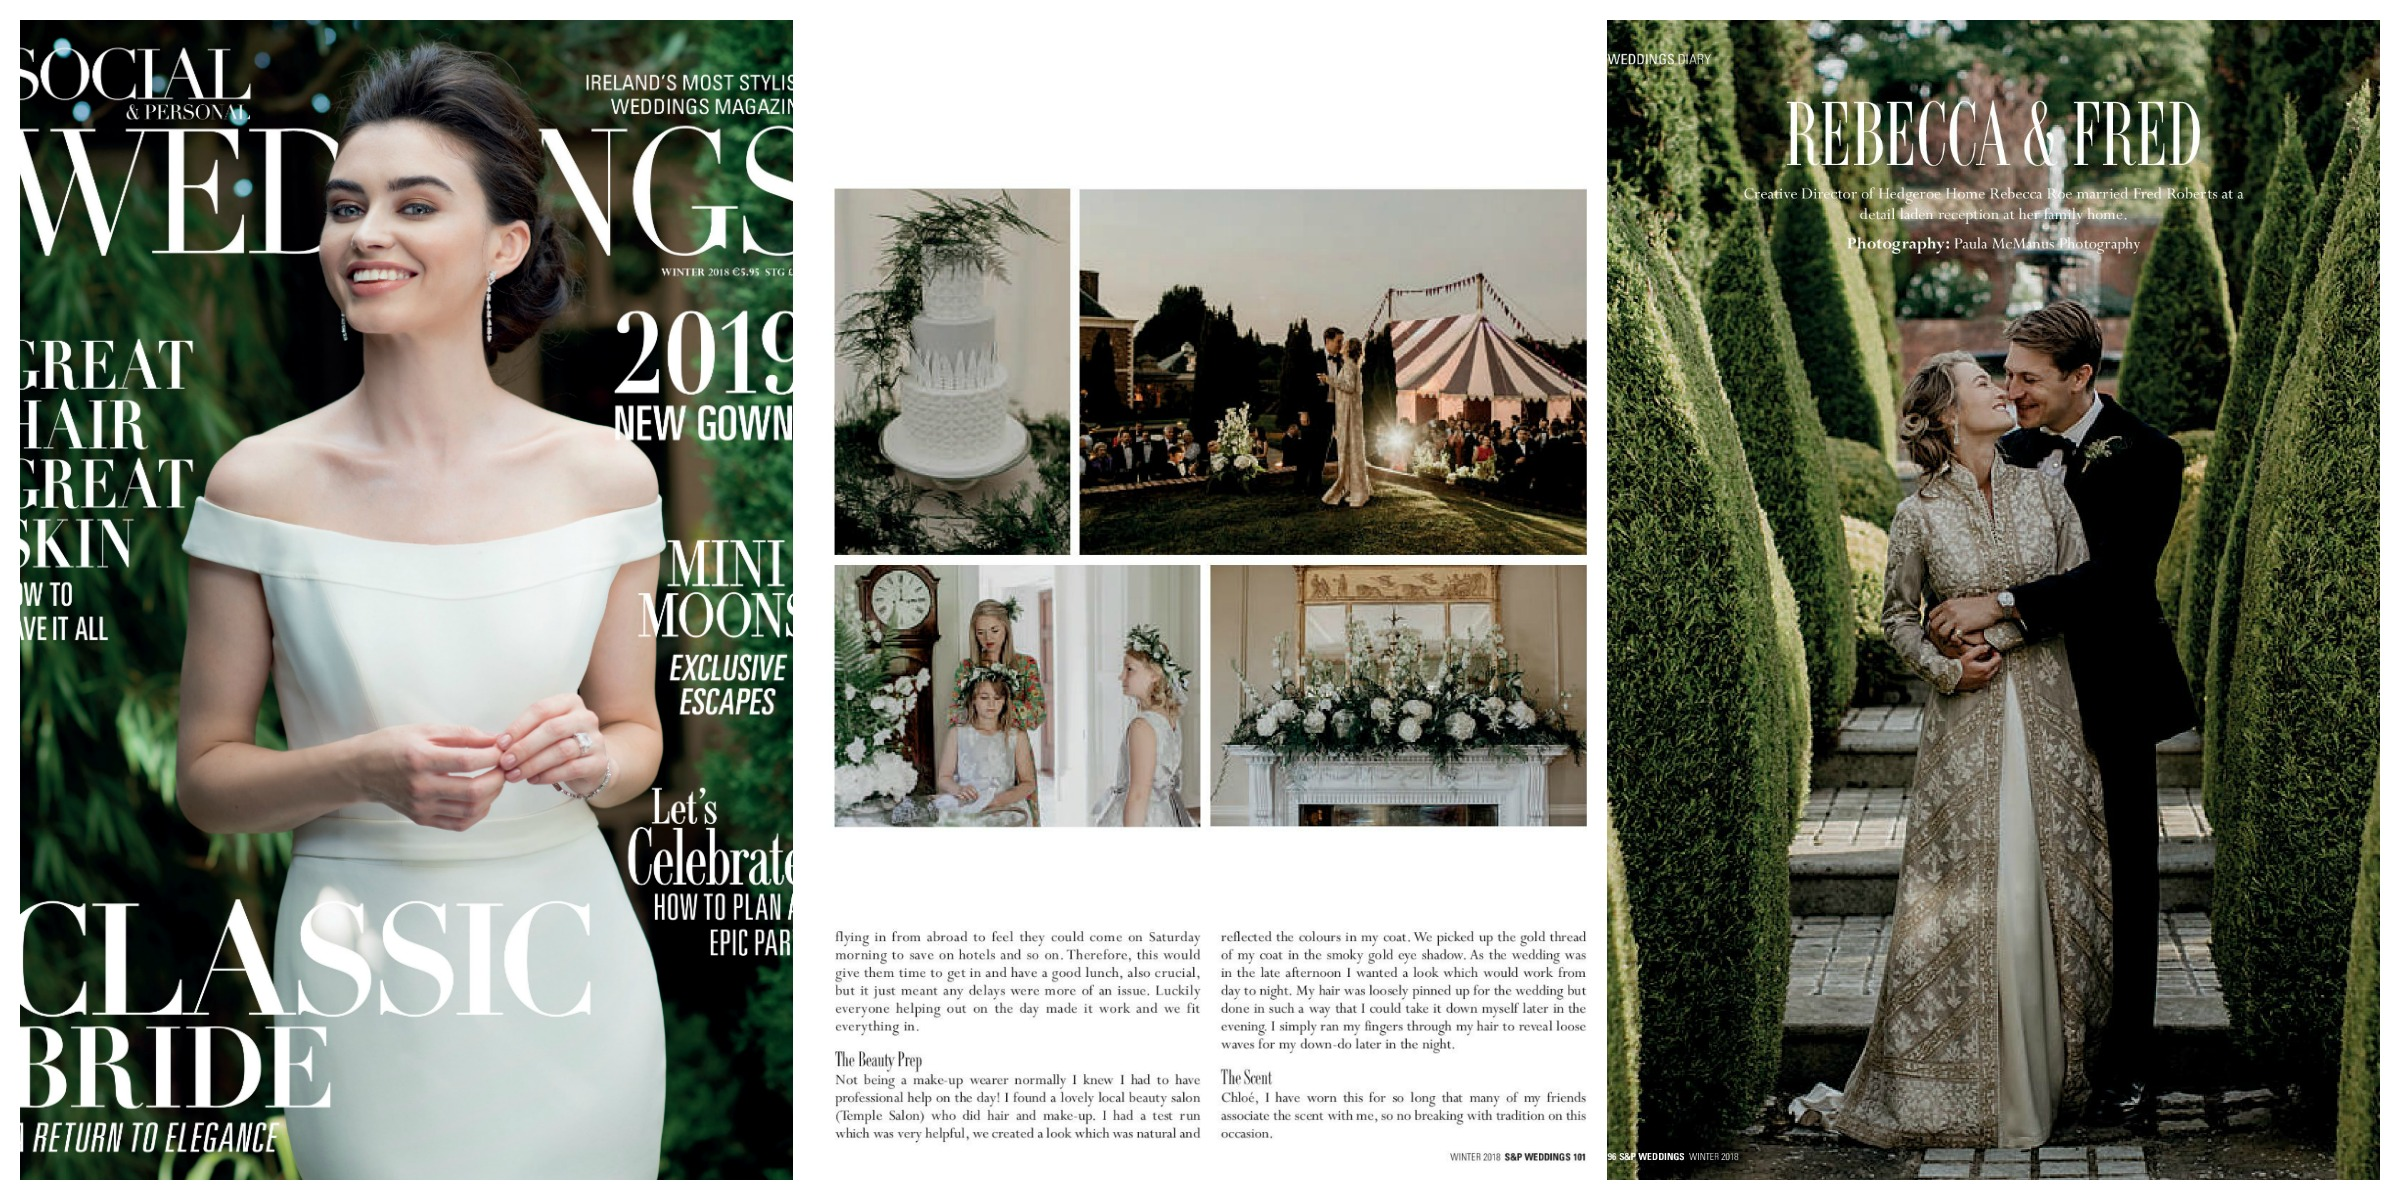 Wedding publication